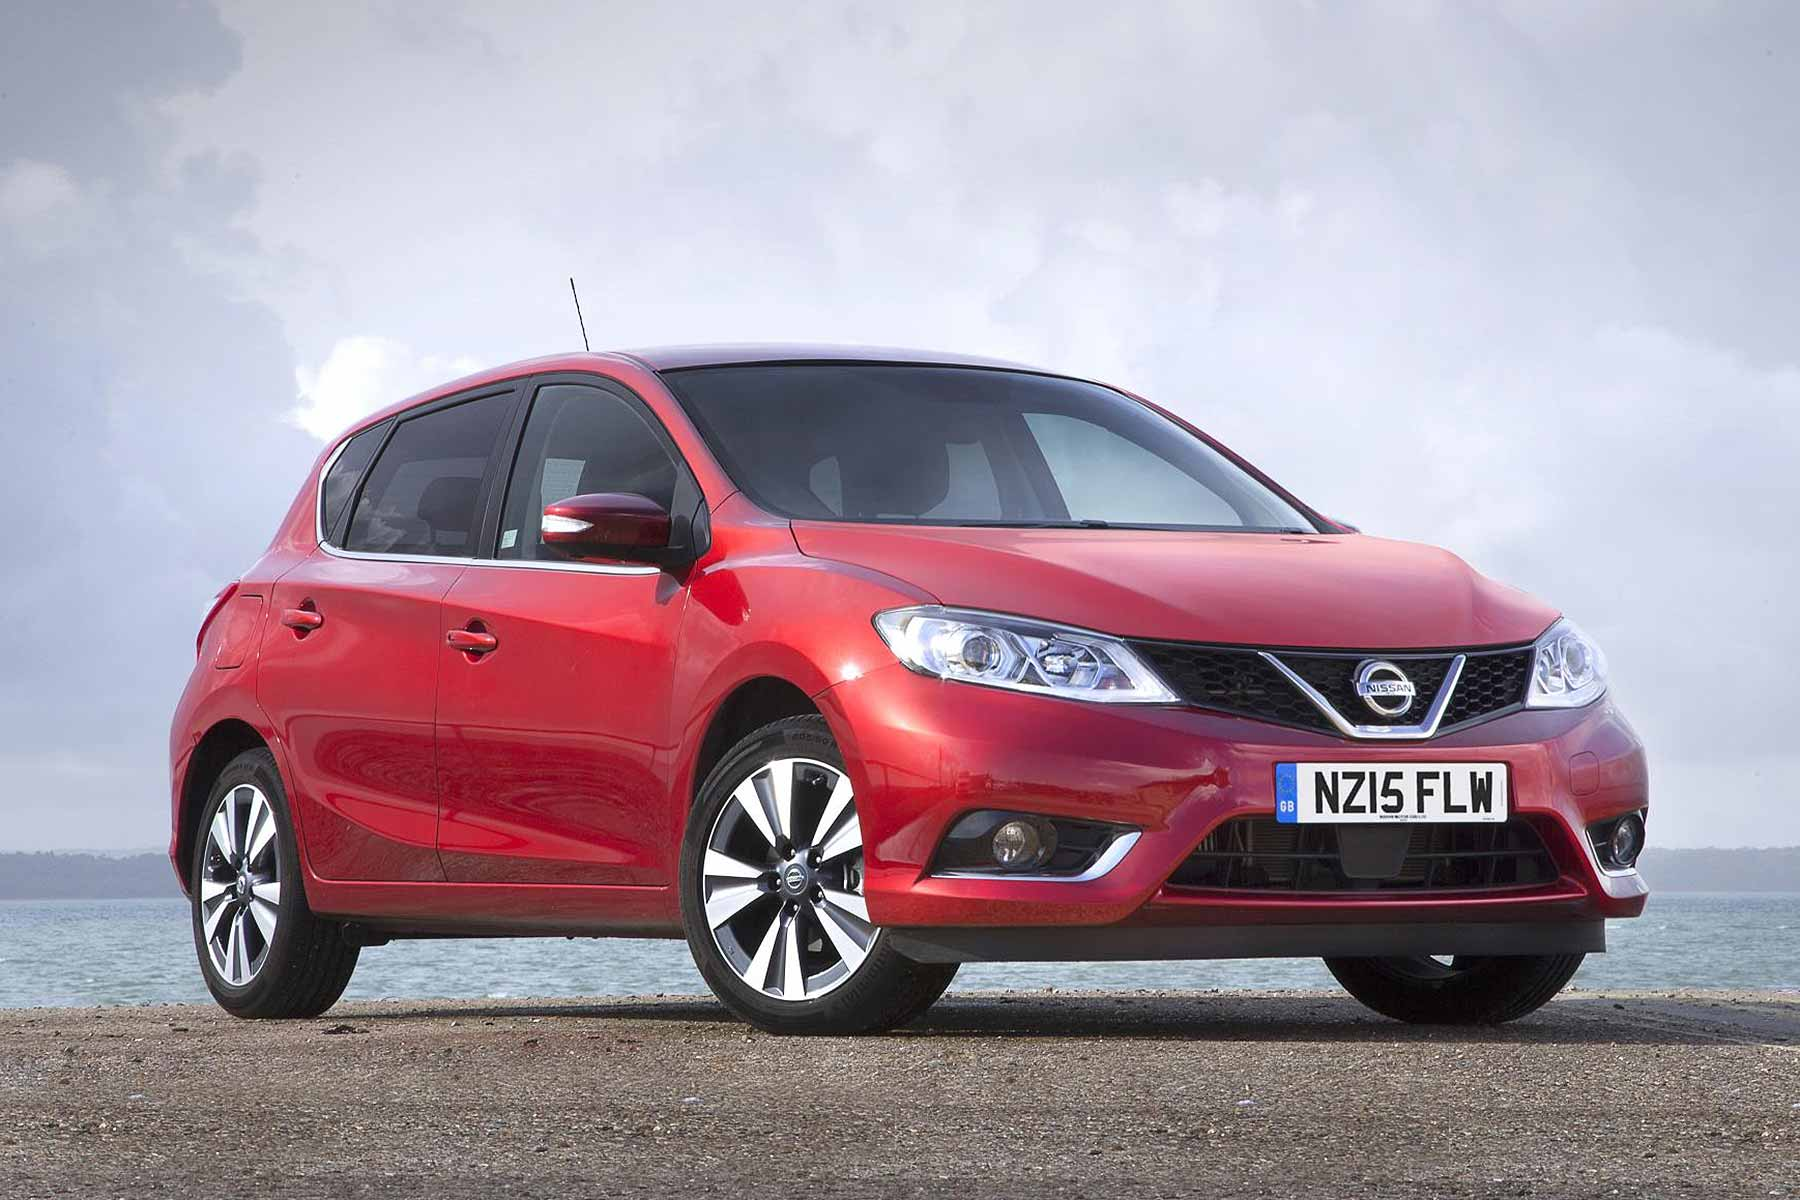 nissan to end production of the pulsar in europe motoring research. Black Bedroom Furniture Sets. Home Design Ideas